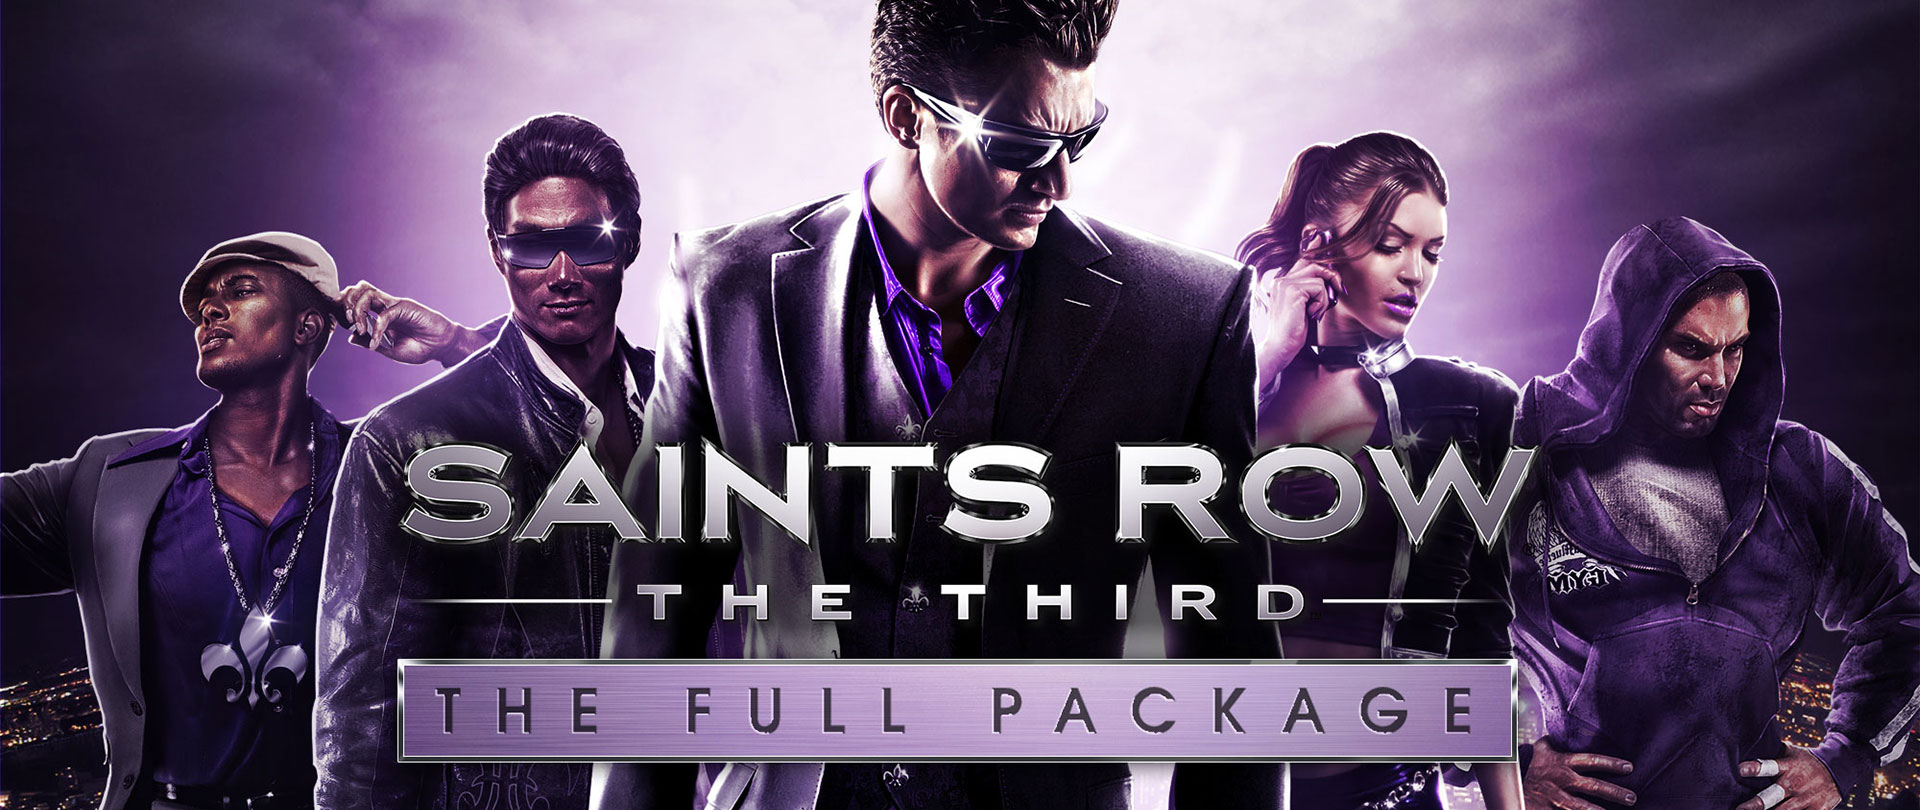 Saints Row: The Third - The Full Package: aperti i pre-order thumbnail